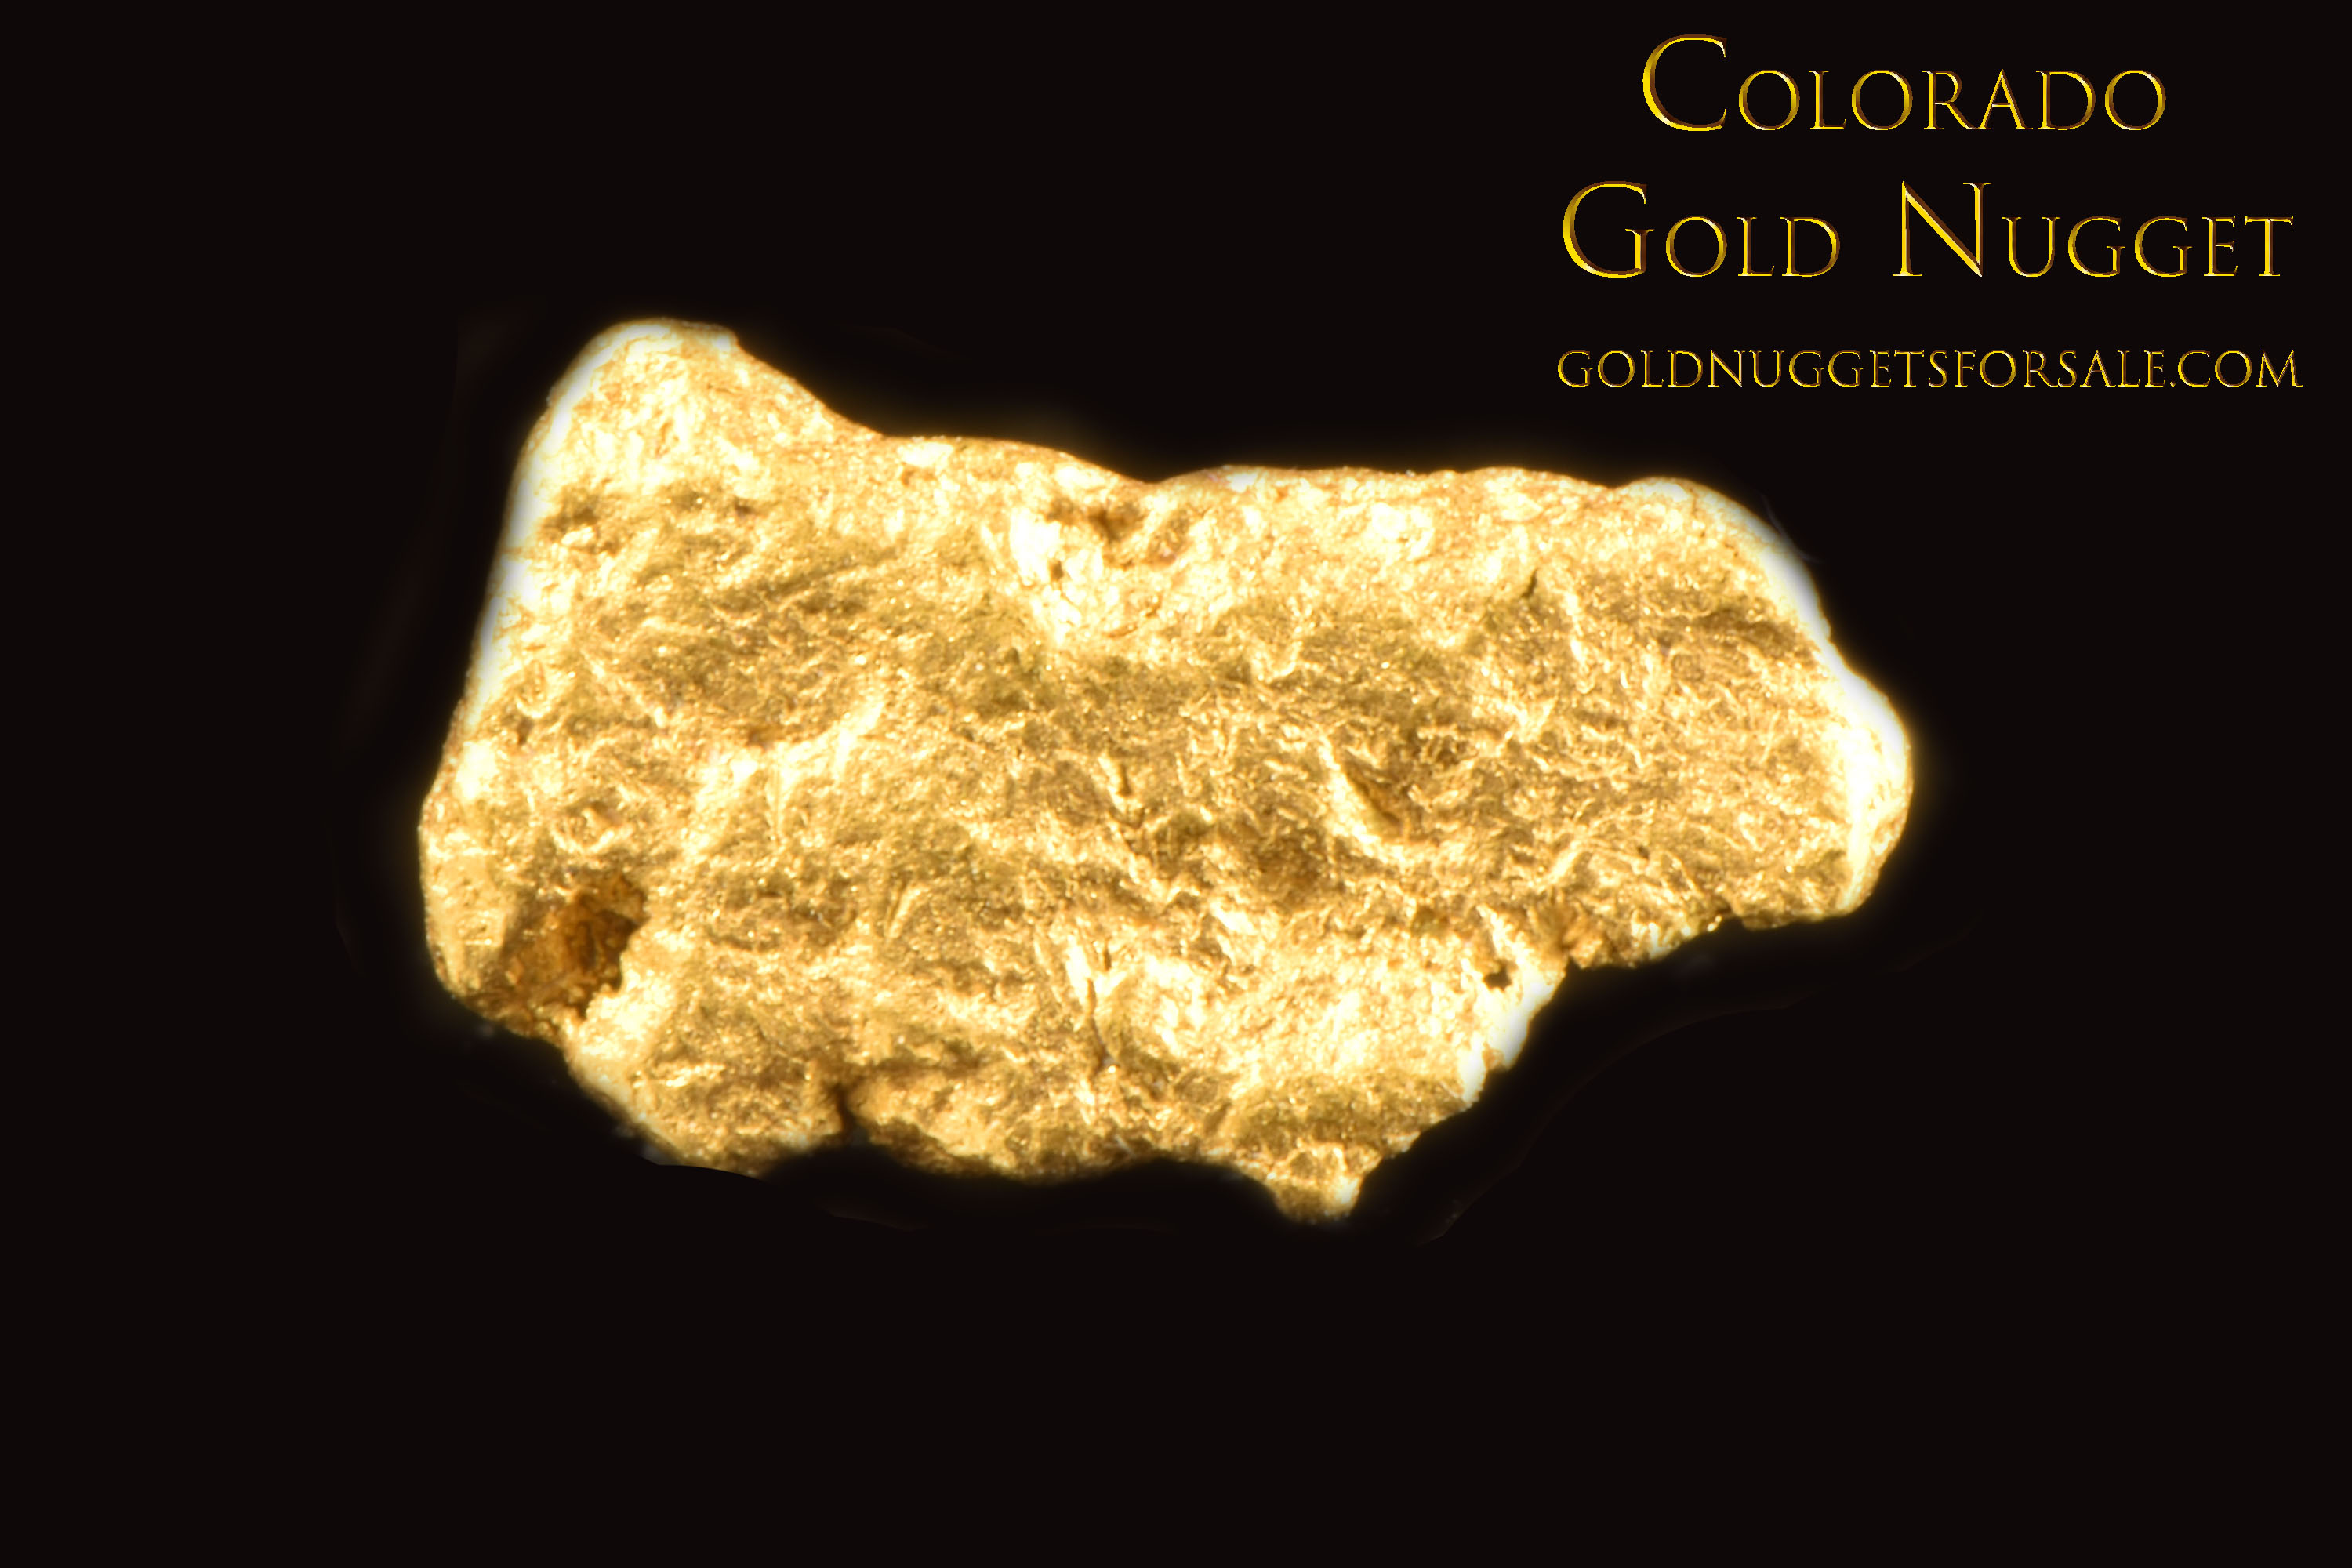 Colorado Gold Nugget - Great price